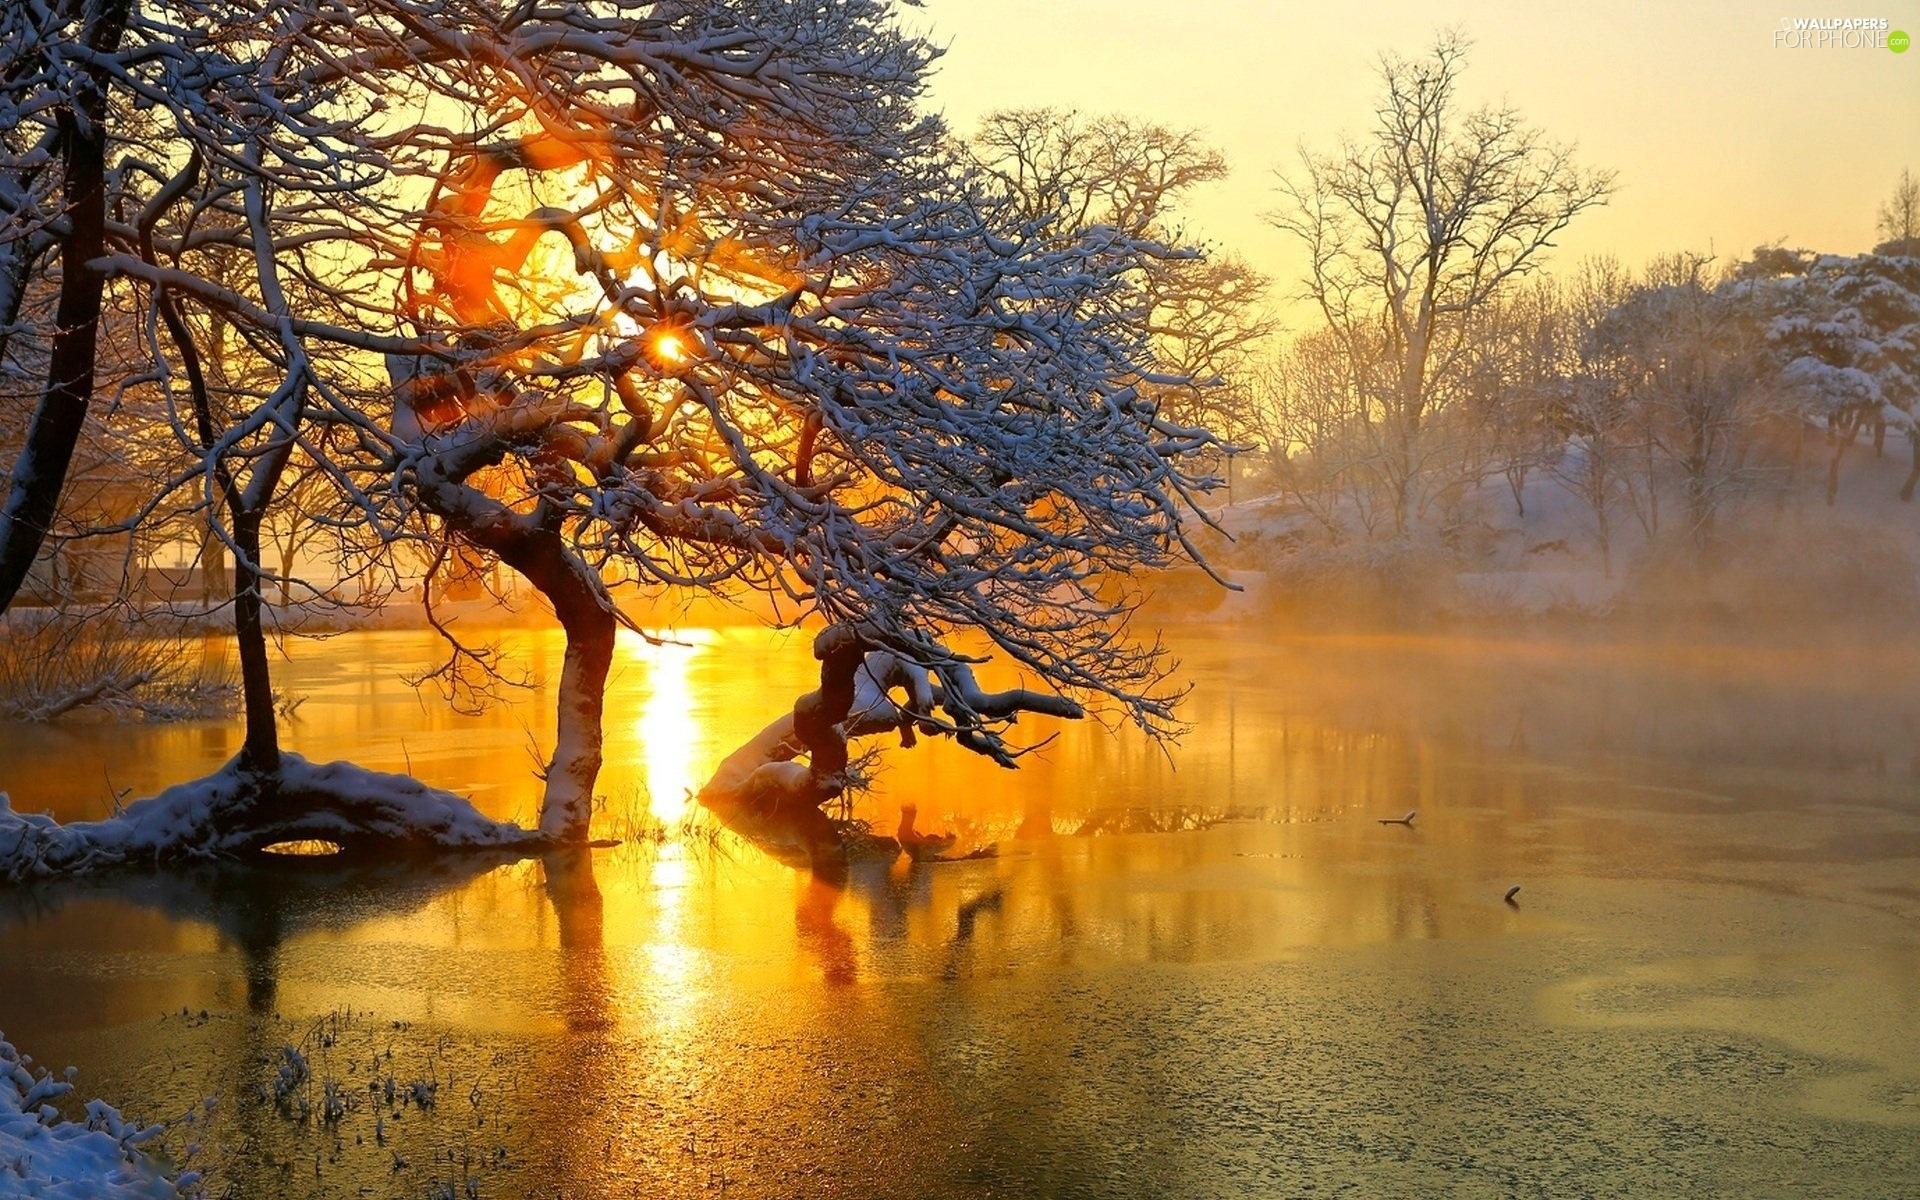 viewes, River, west, trees, winter, Fog, sun